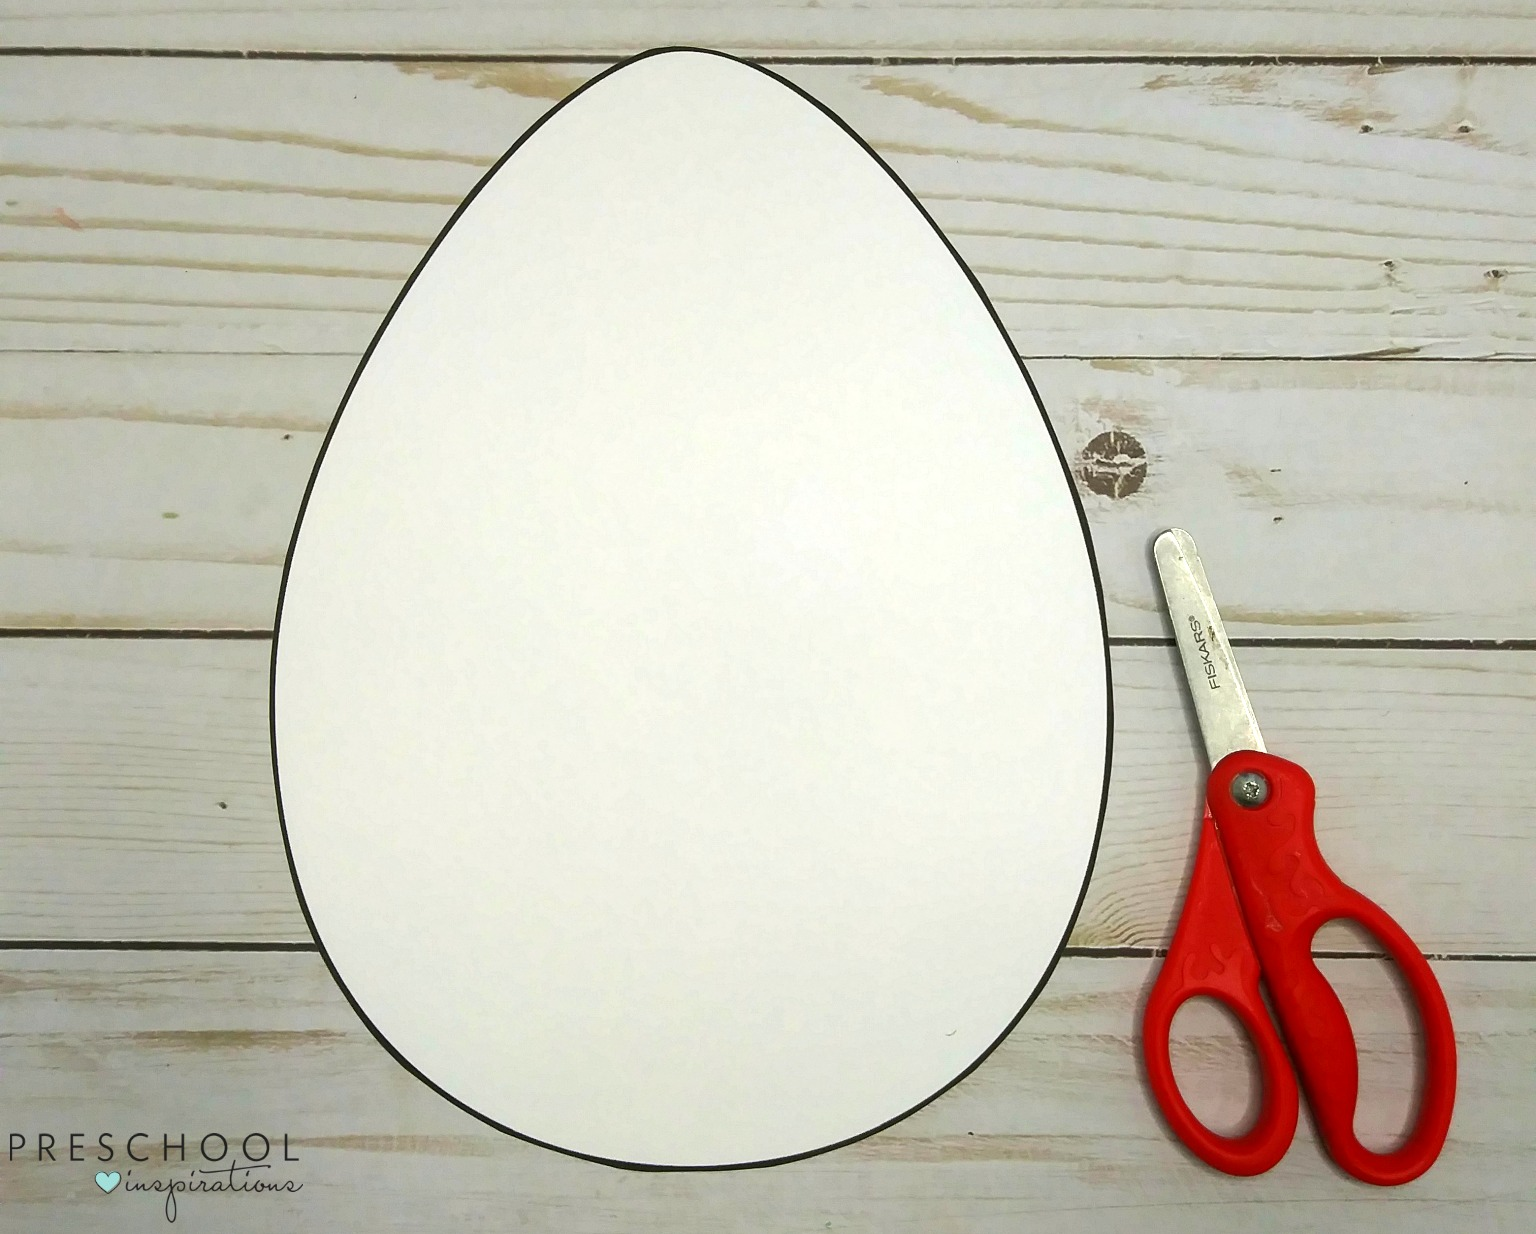 Ready to make tape resist Easter egg art with kids